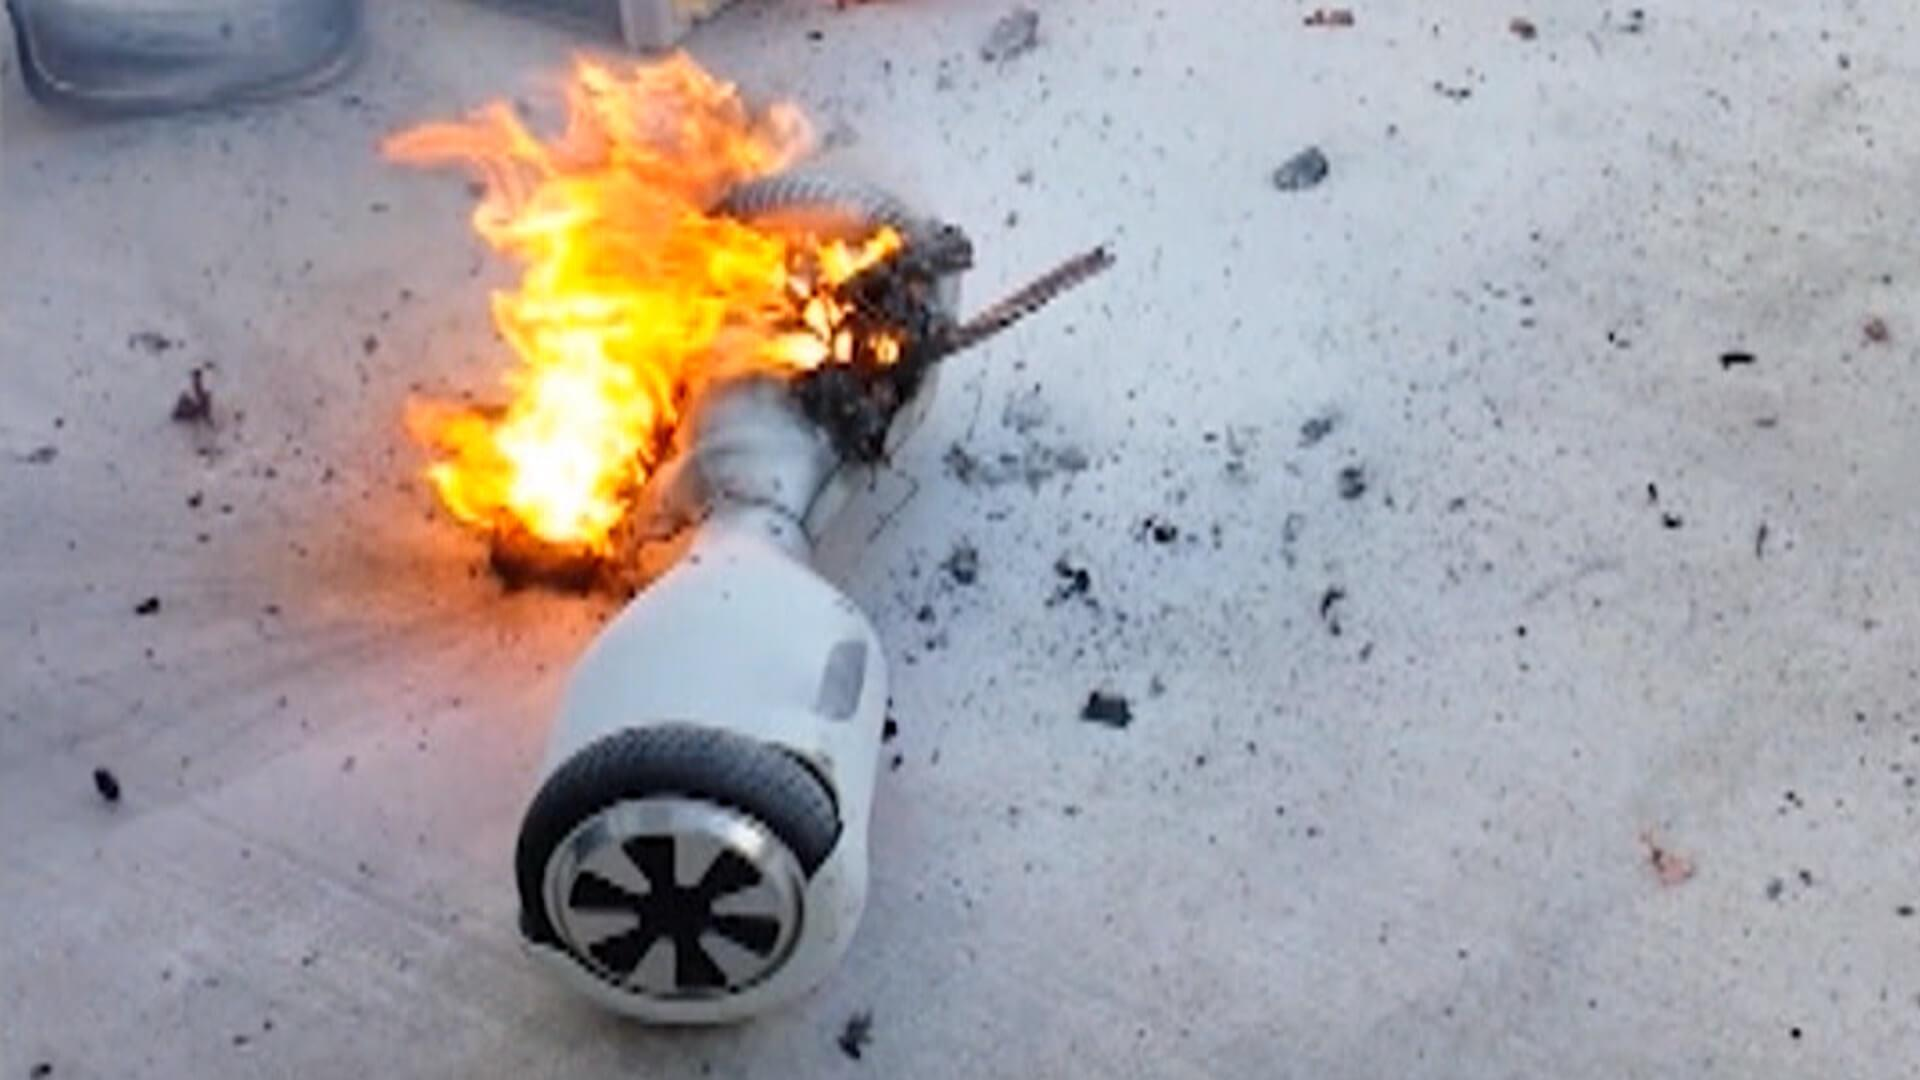 hoverboard fire entrepreneur story advice